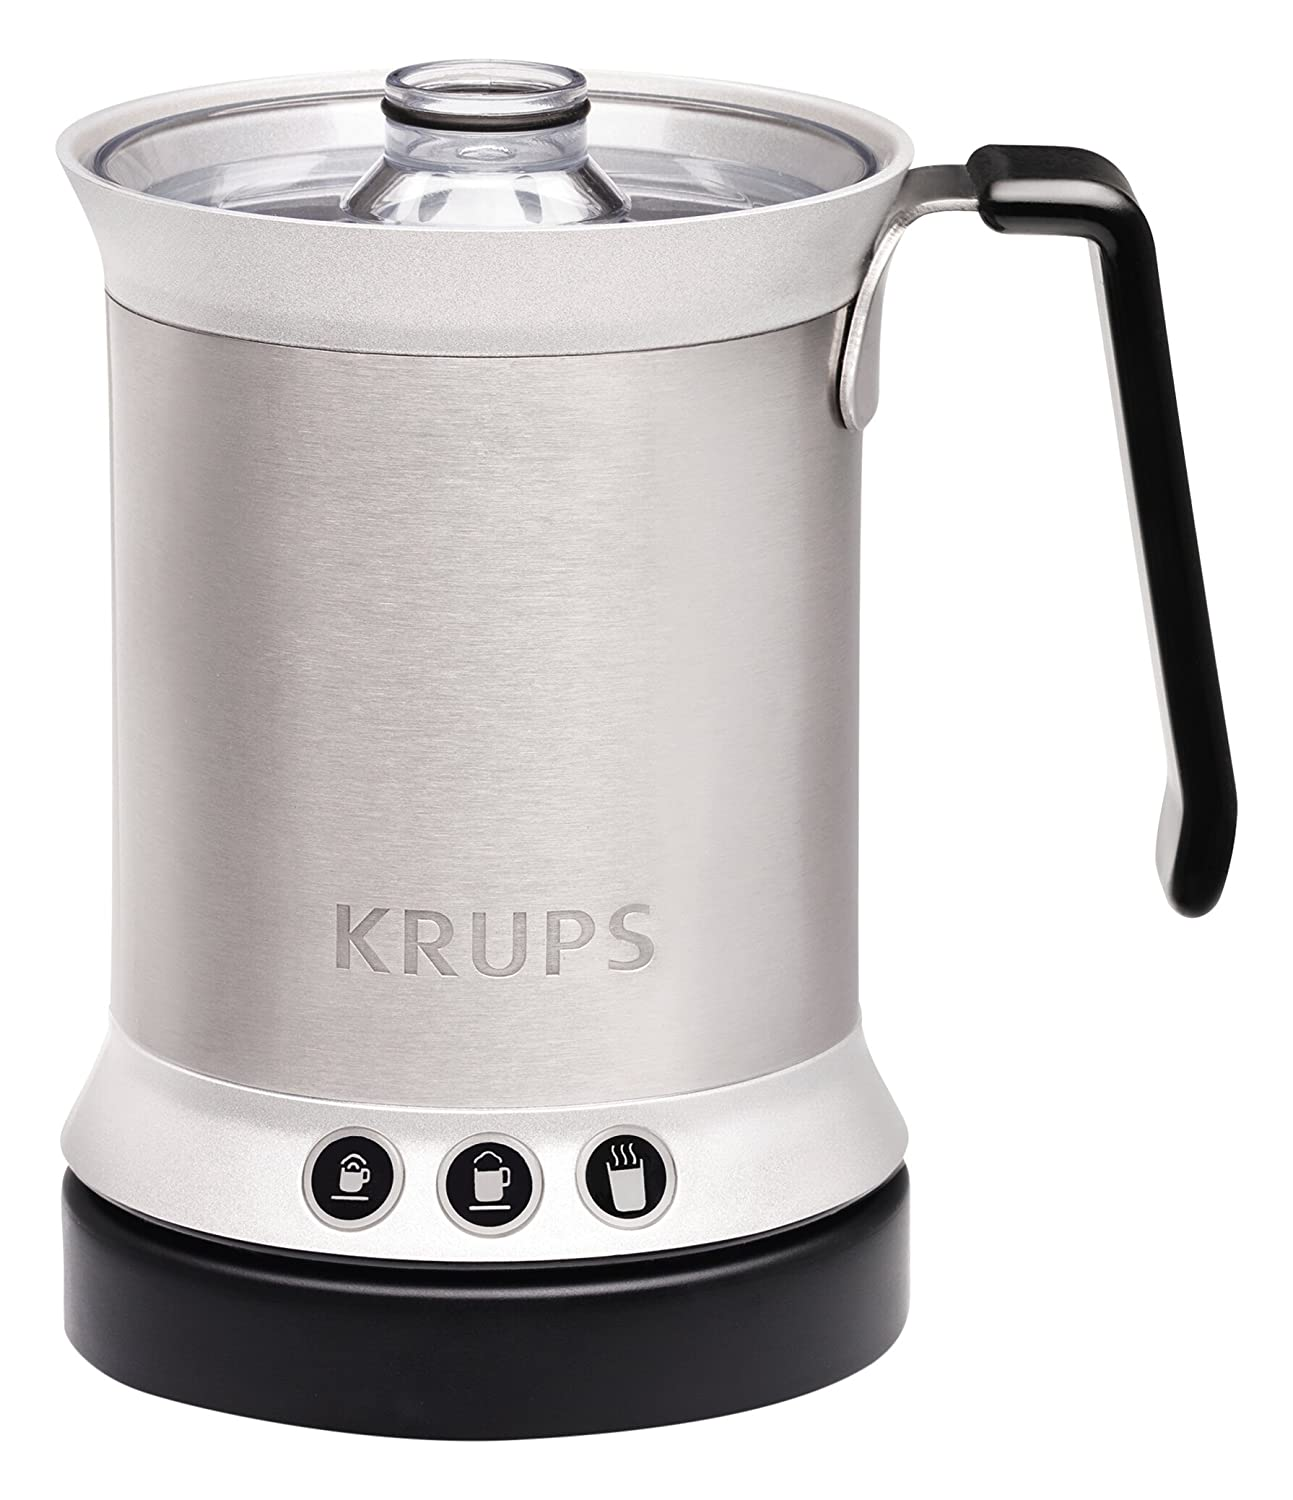 Krups Automatic Milk Frother [Energy Class A]